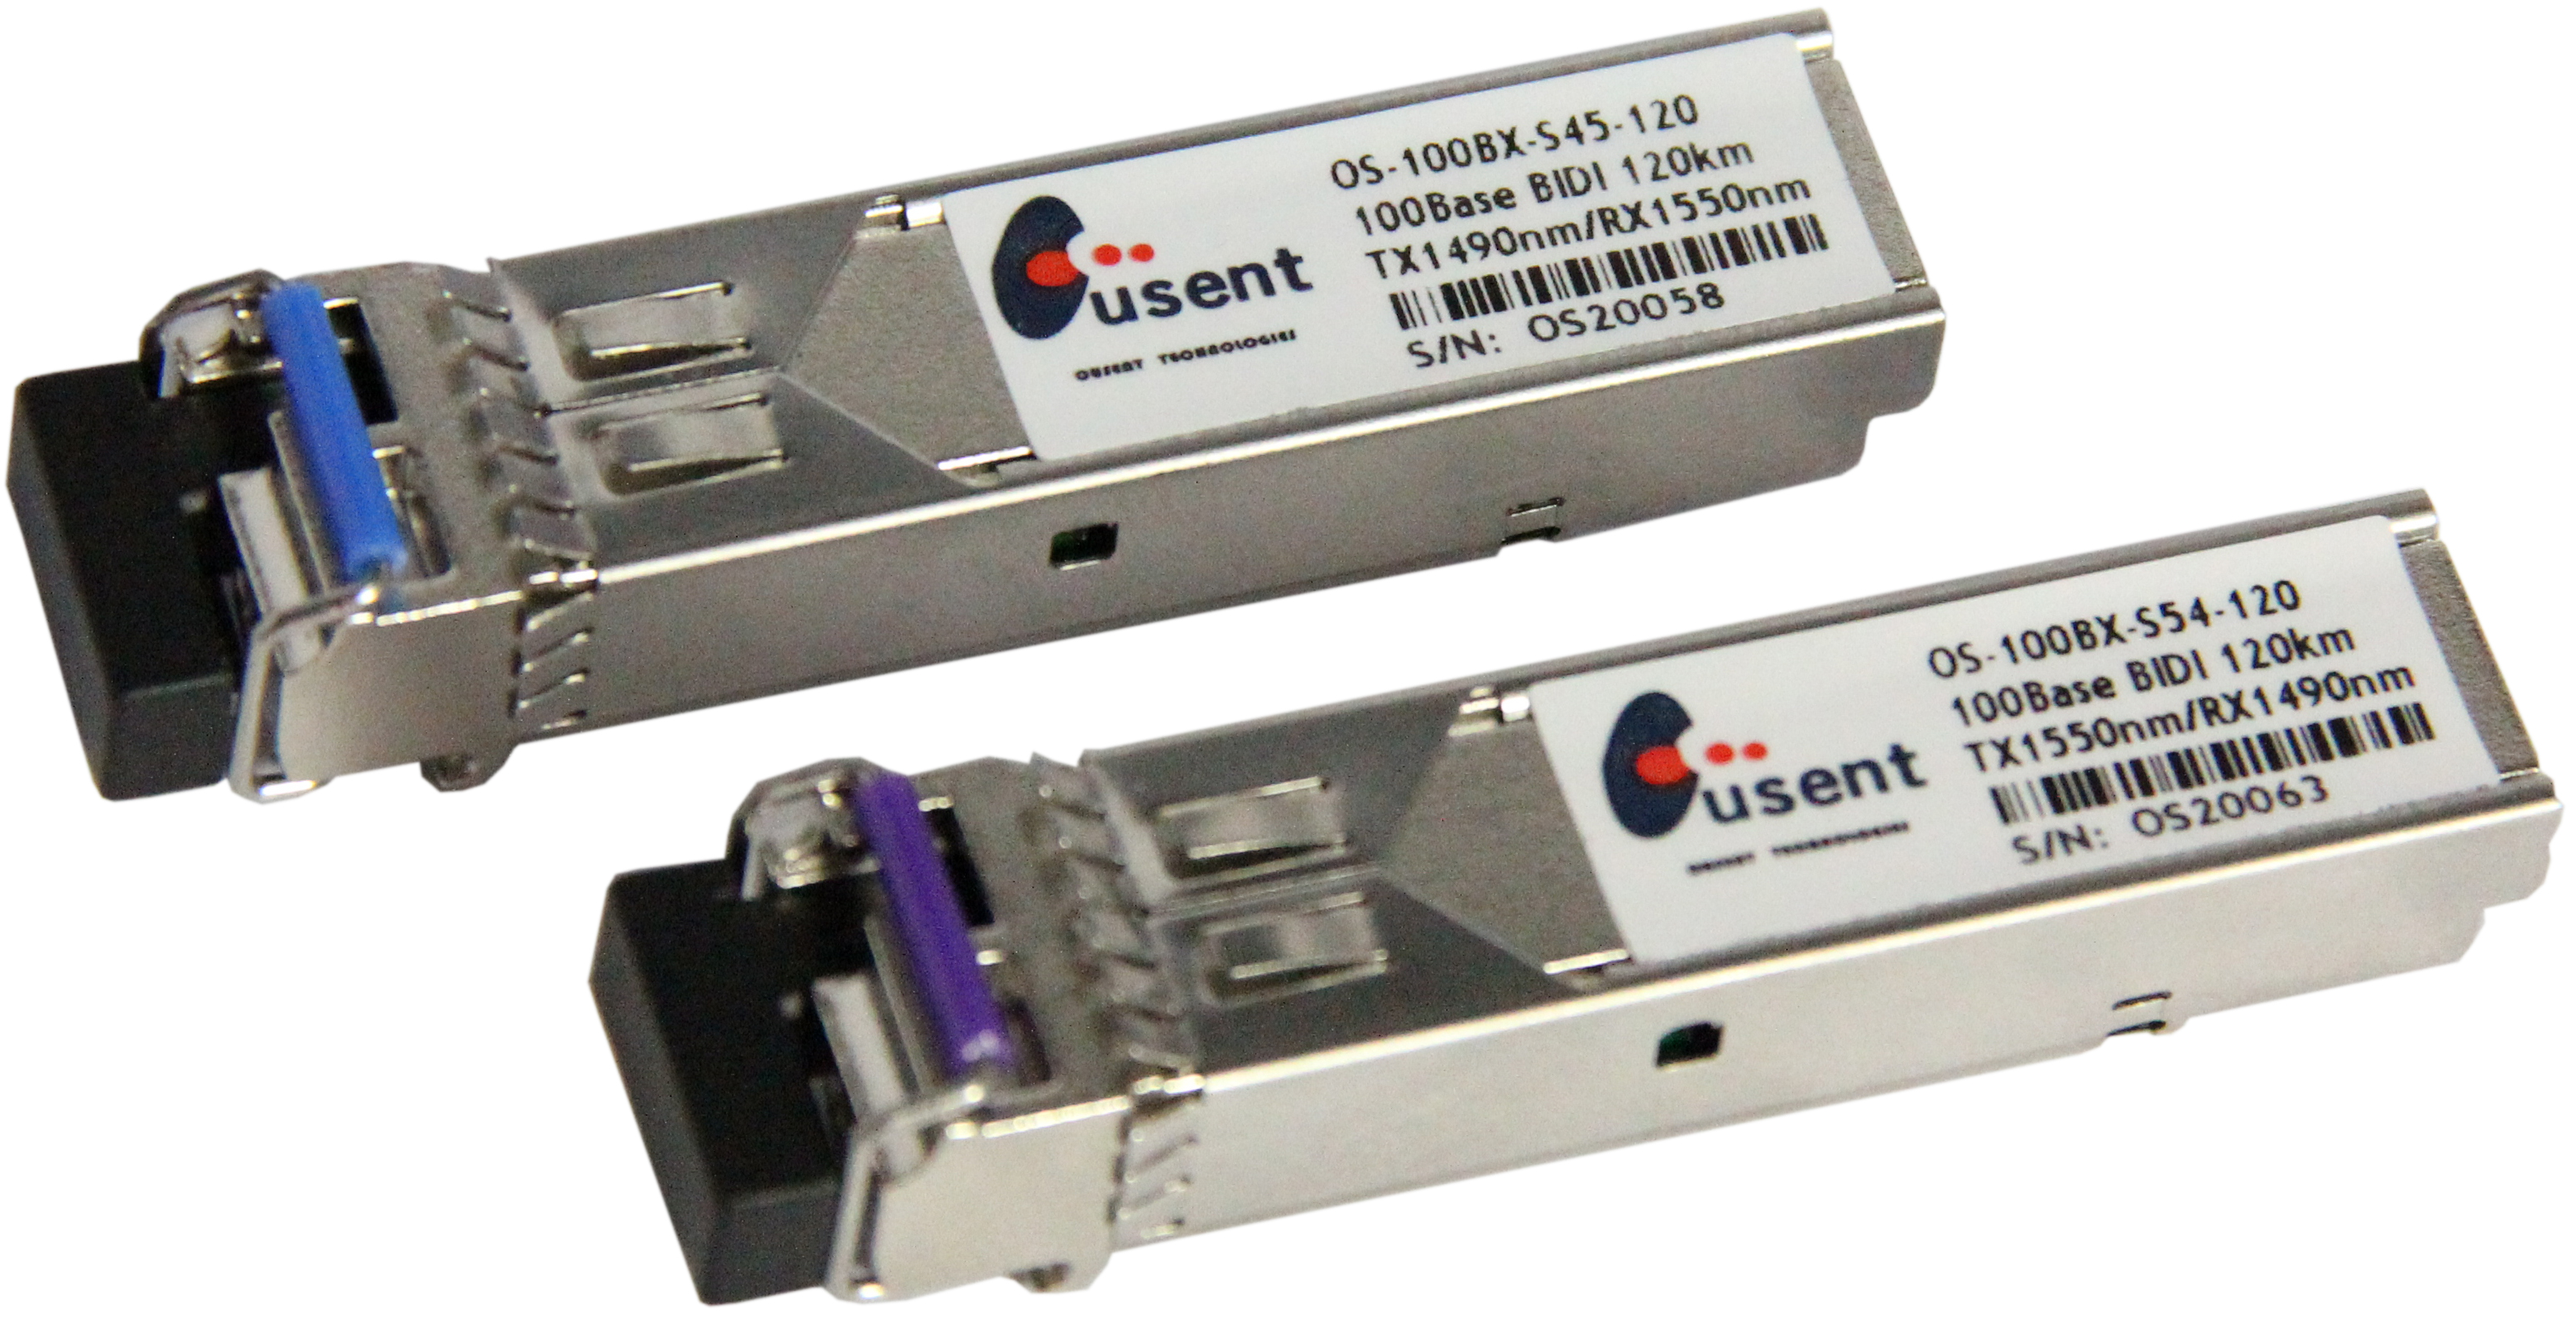 File:Ousent Optical Transceiver BIDI SFP 01 jpg - Wikimedia